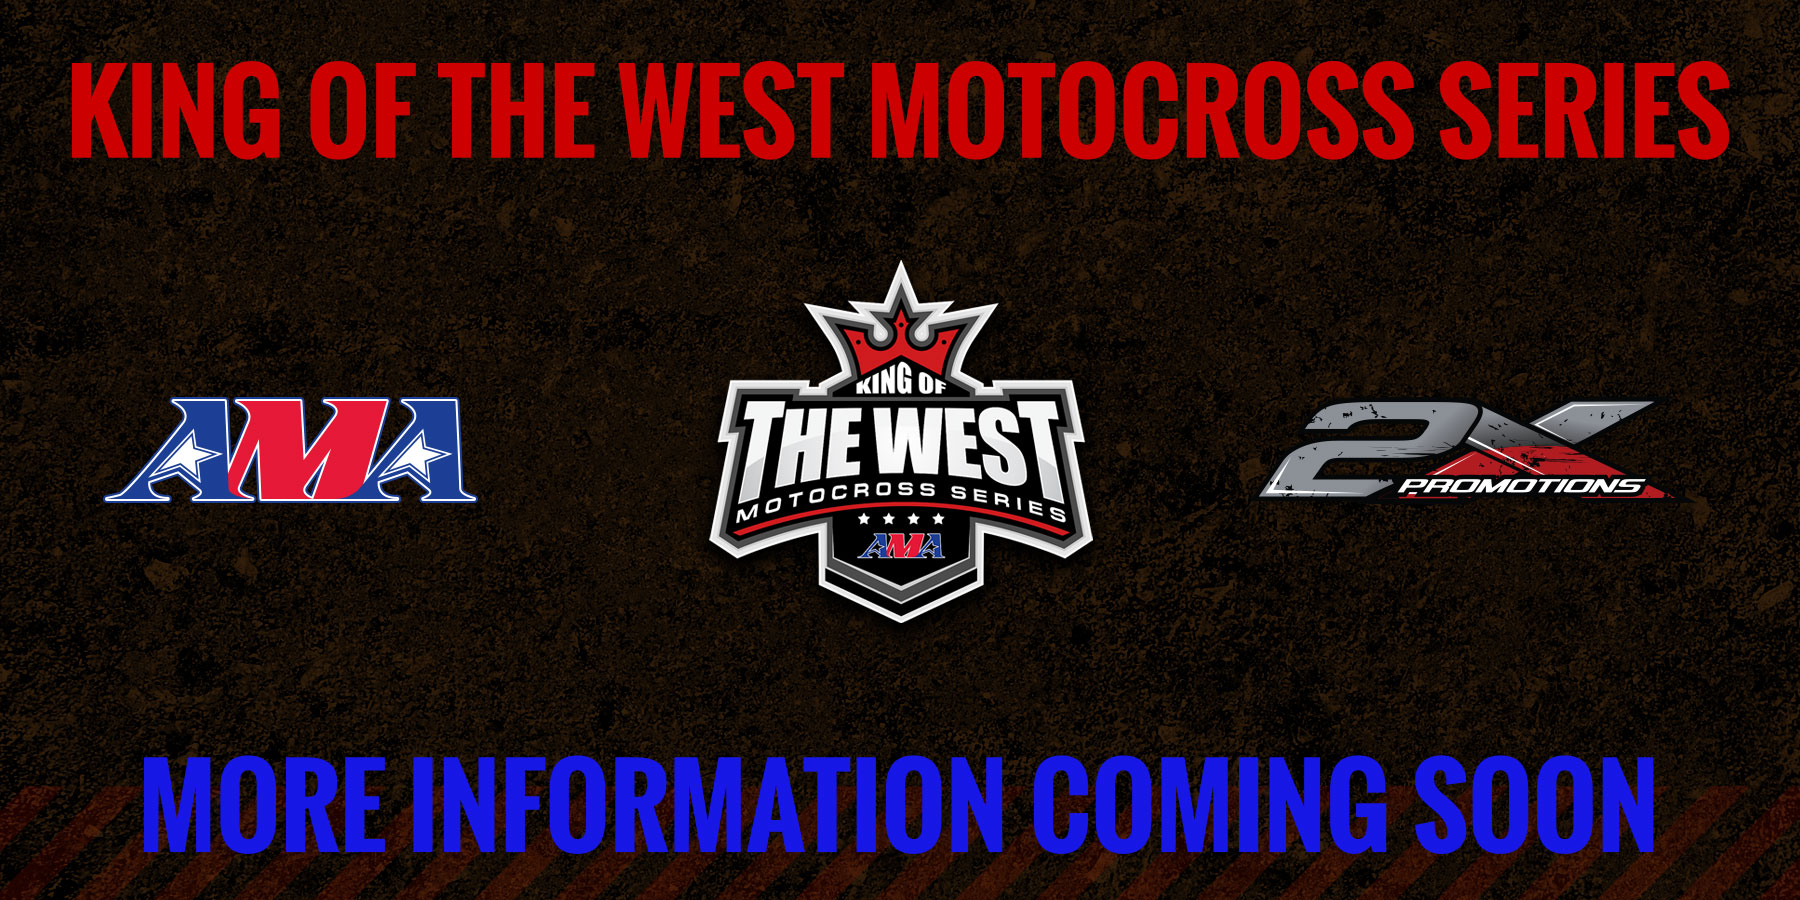 King of the West Motocross Series